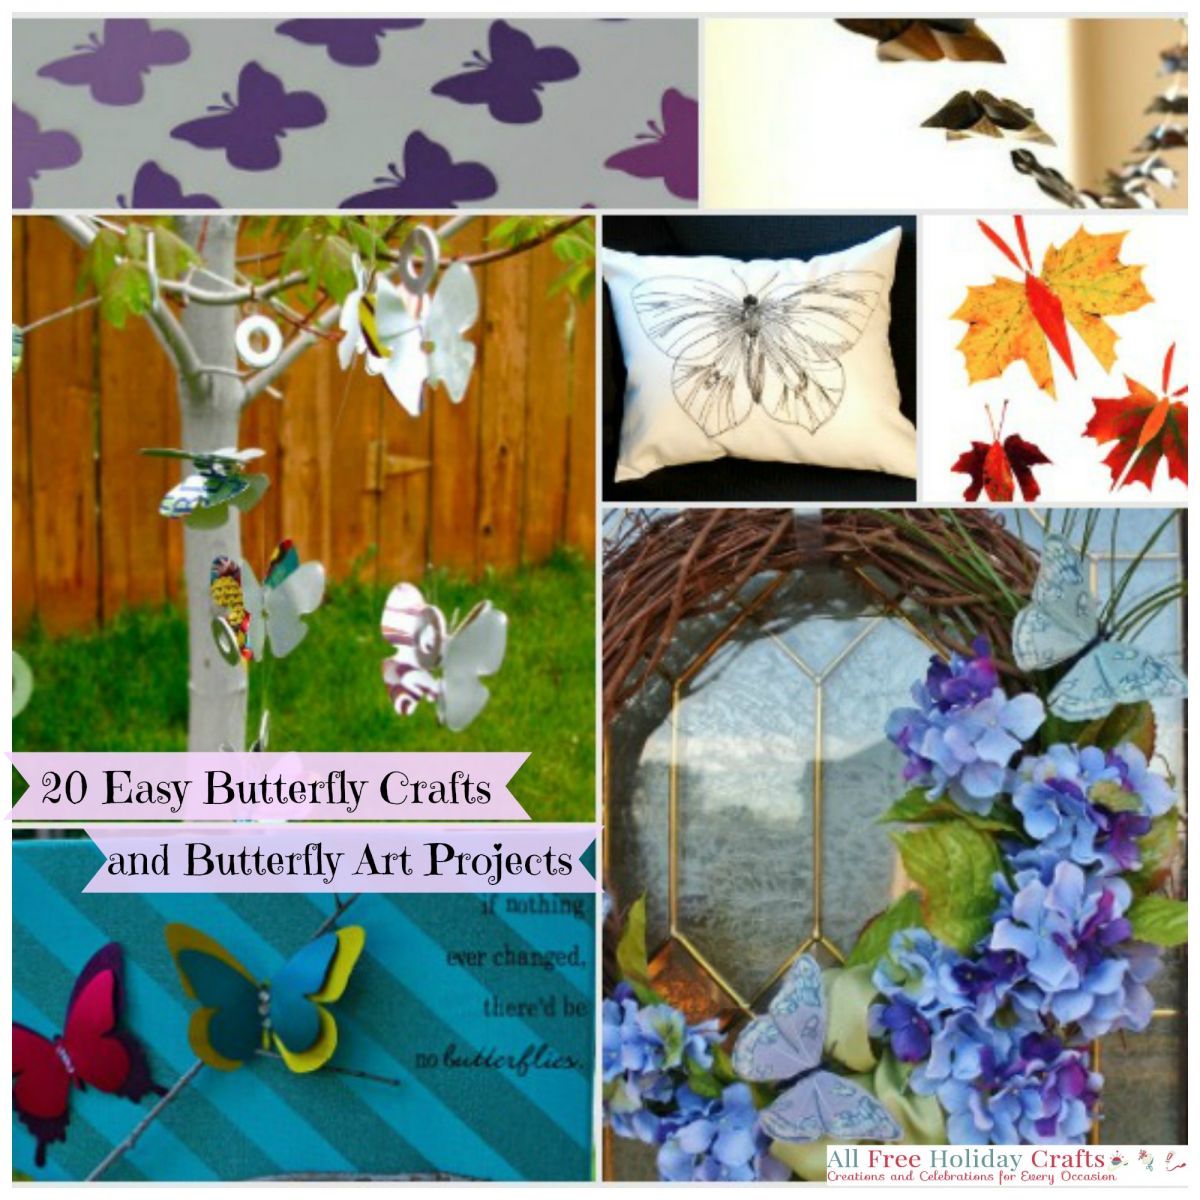 20 easy butterfly crafts and butterfly art projects for All free holiday crafts